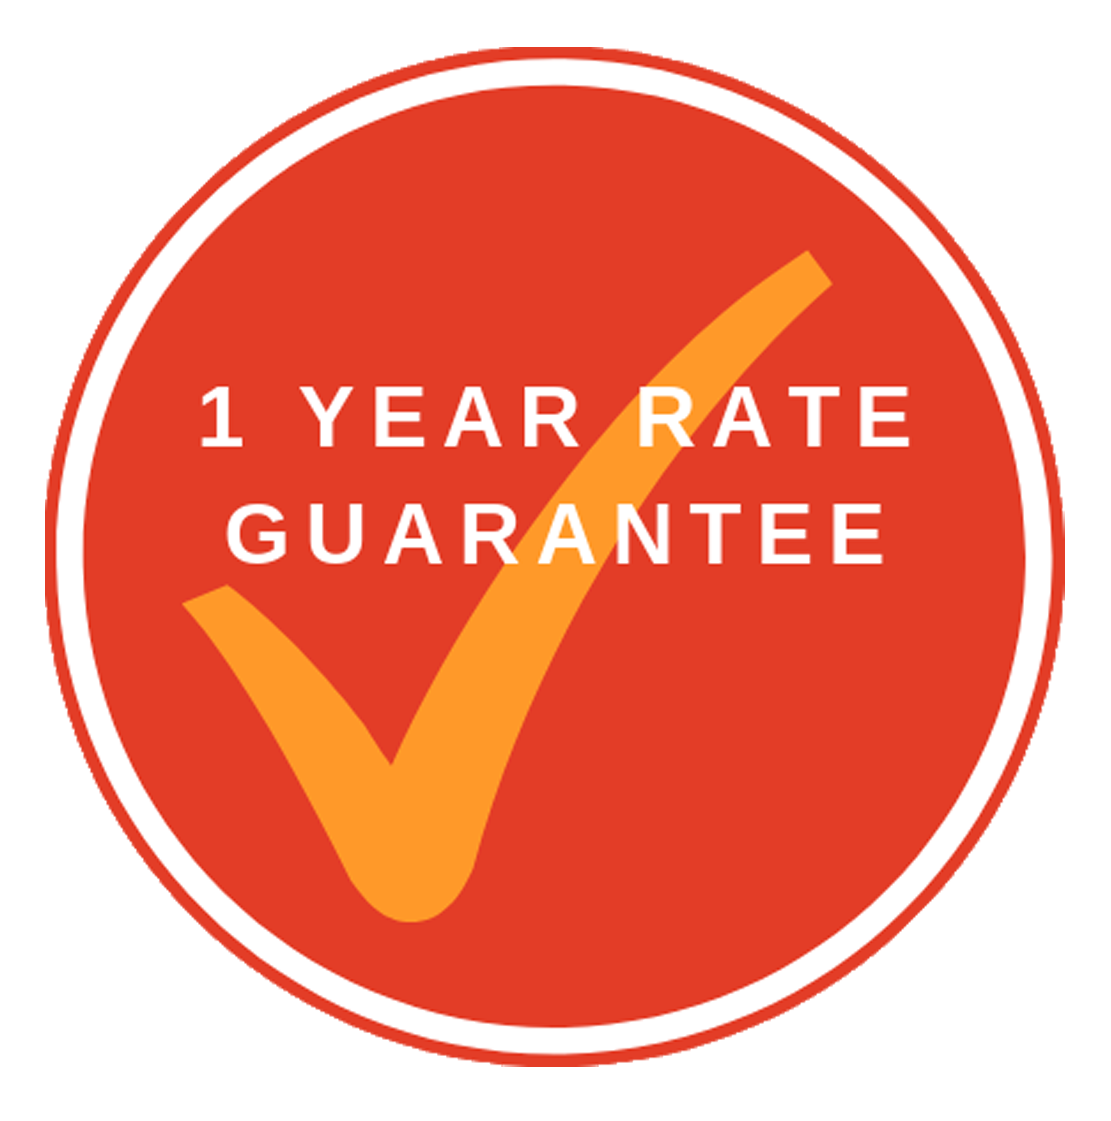 Orchard St Self Storage 1 Year Rate Guarantee!